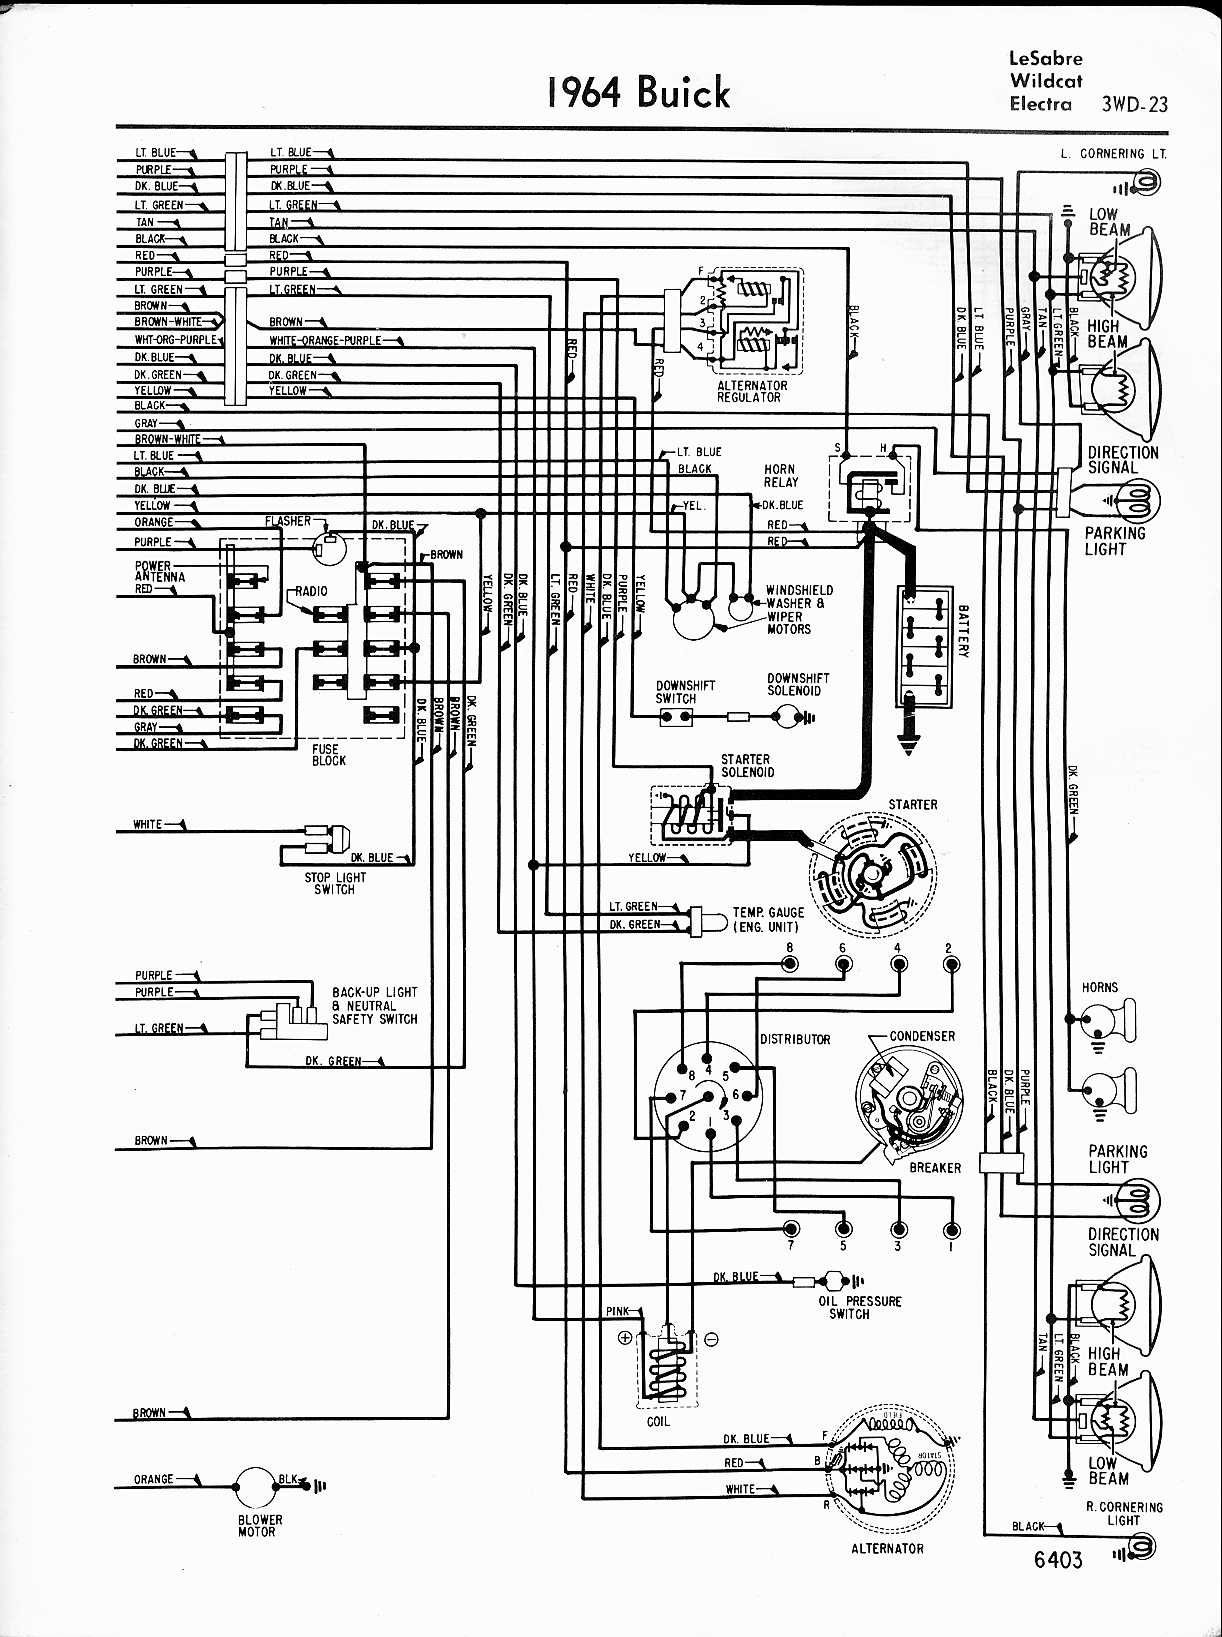 Wildcat Wiring Diagram Manual Guide Epiphone Buick Diagrams 1957 1965 Rh Oldcarmanualproject Com 2013 X